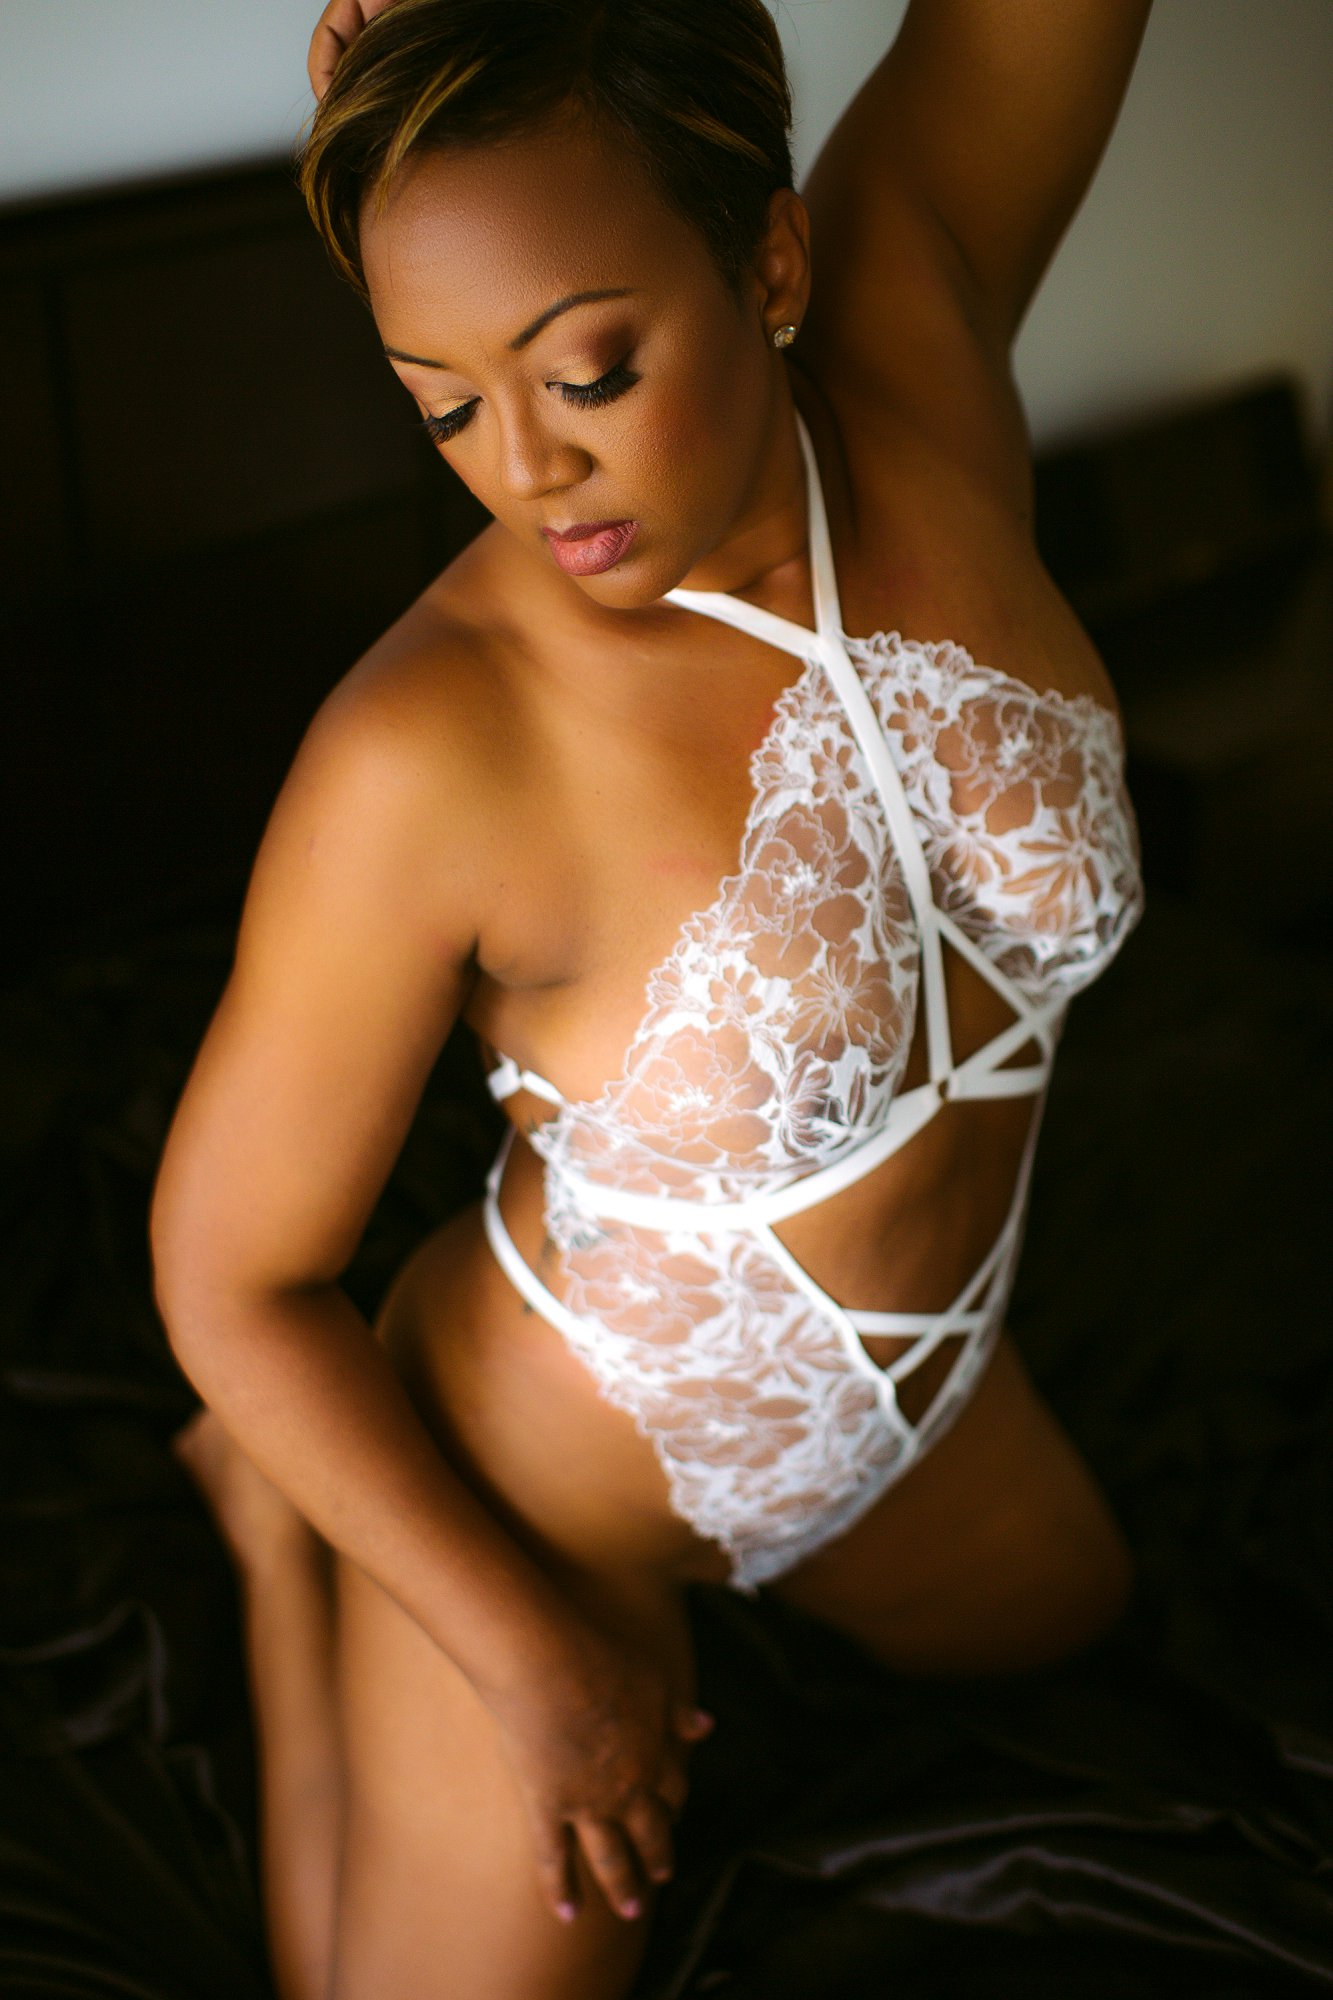 miami downtown brickell boudoir photography